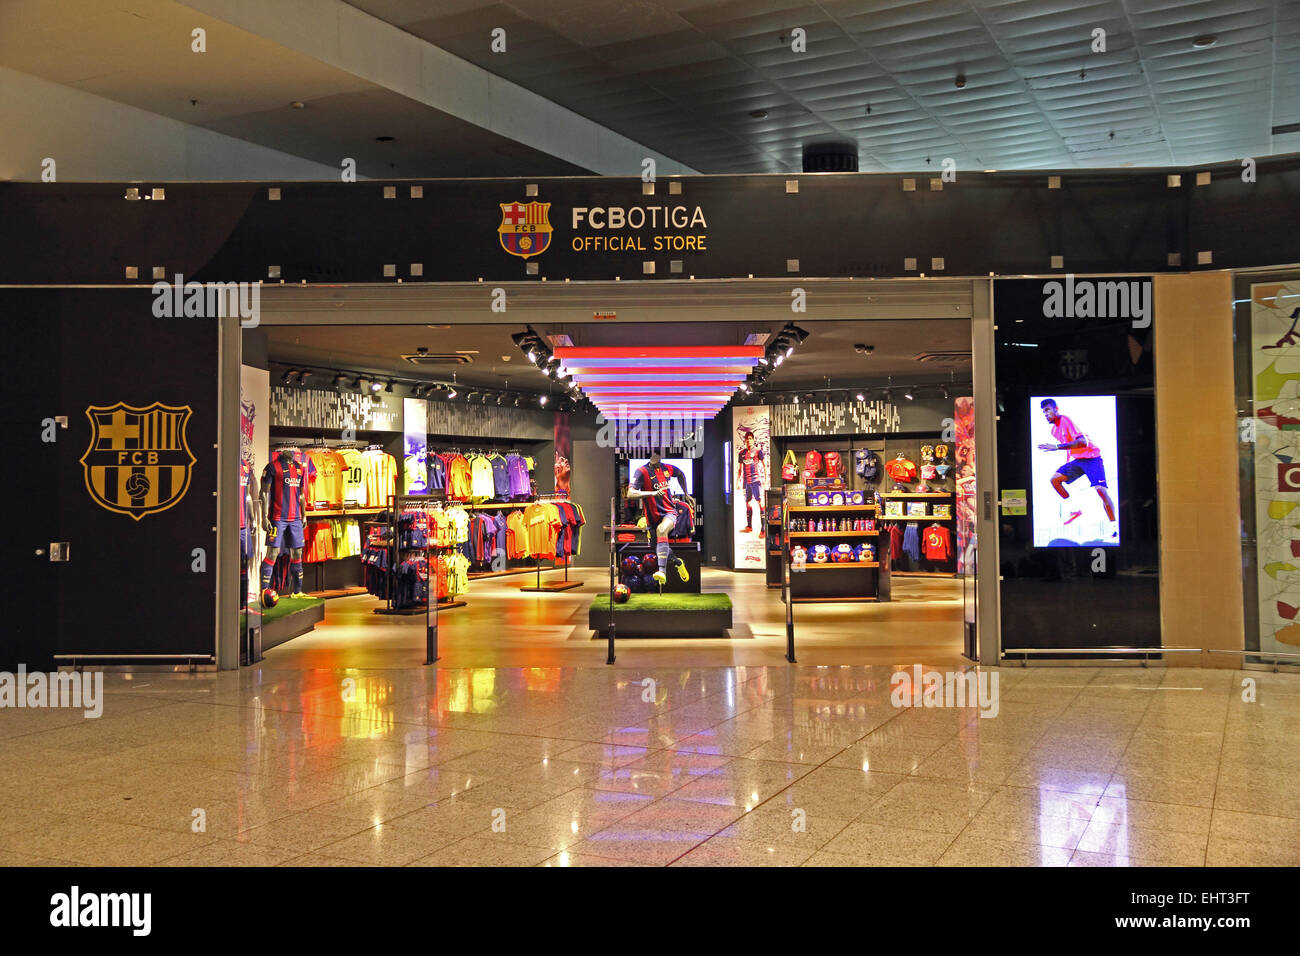 fcbotiga official fc barcelona souvenir shop barcelona el prat stock photo royalty free image. Black Bedroom Furniture Sets. Home Design Ideas